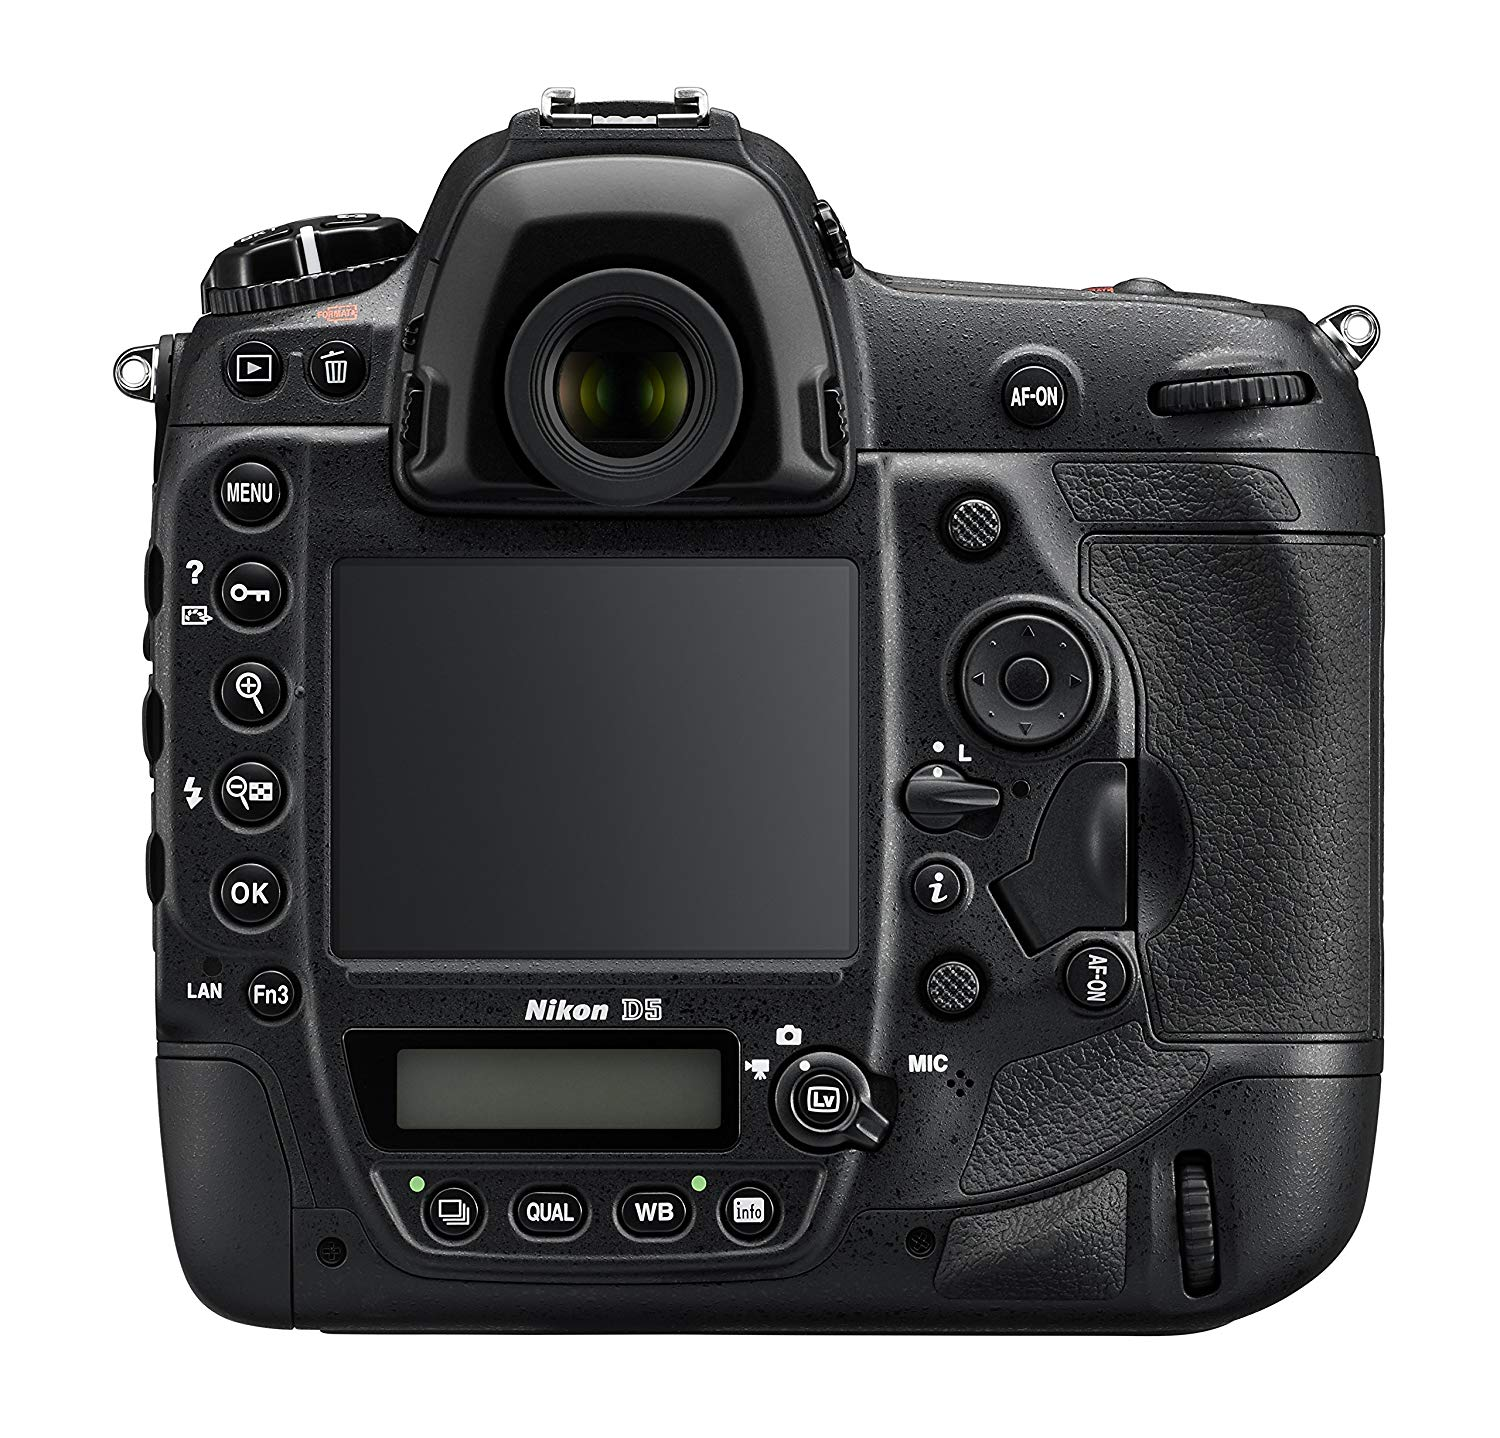 The Nikon D5 Body and Design 2 image